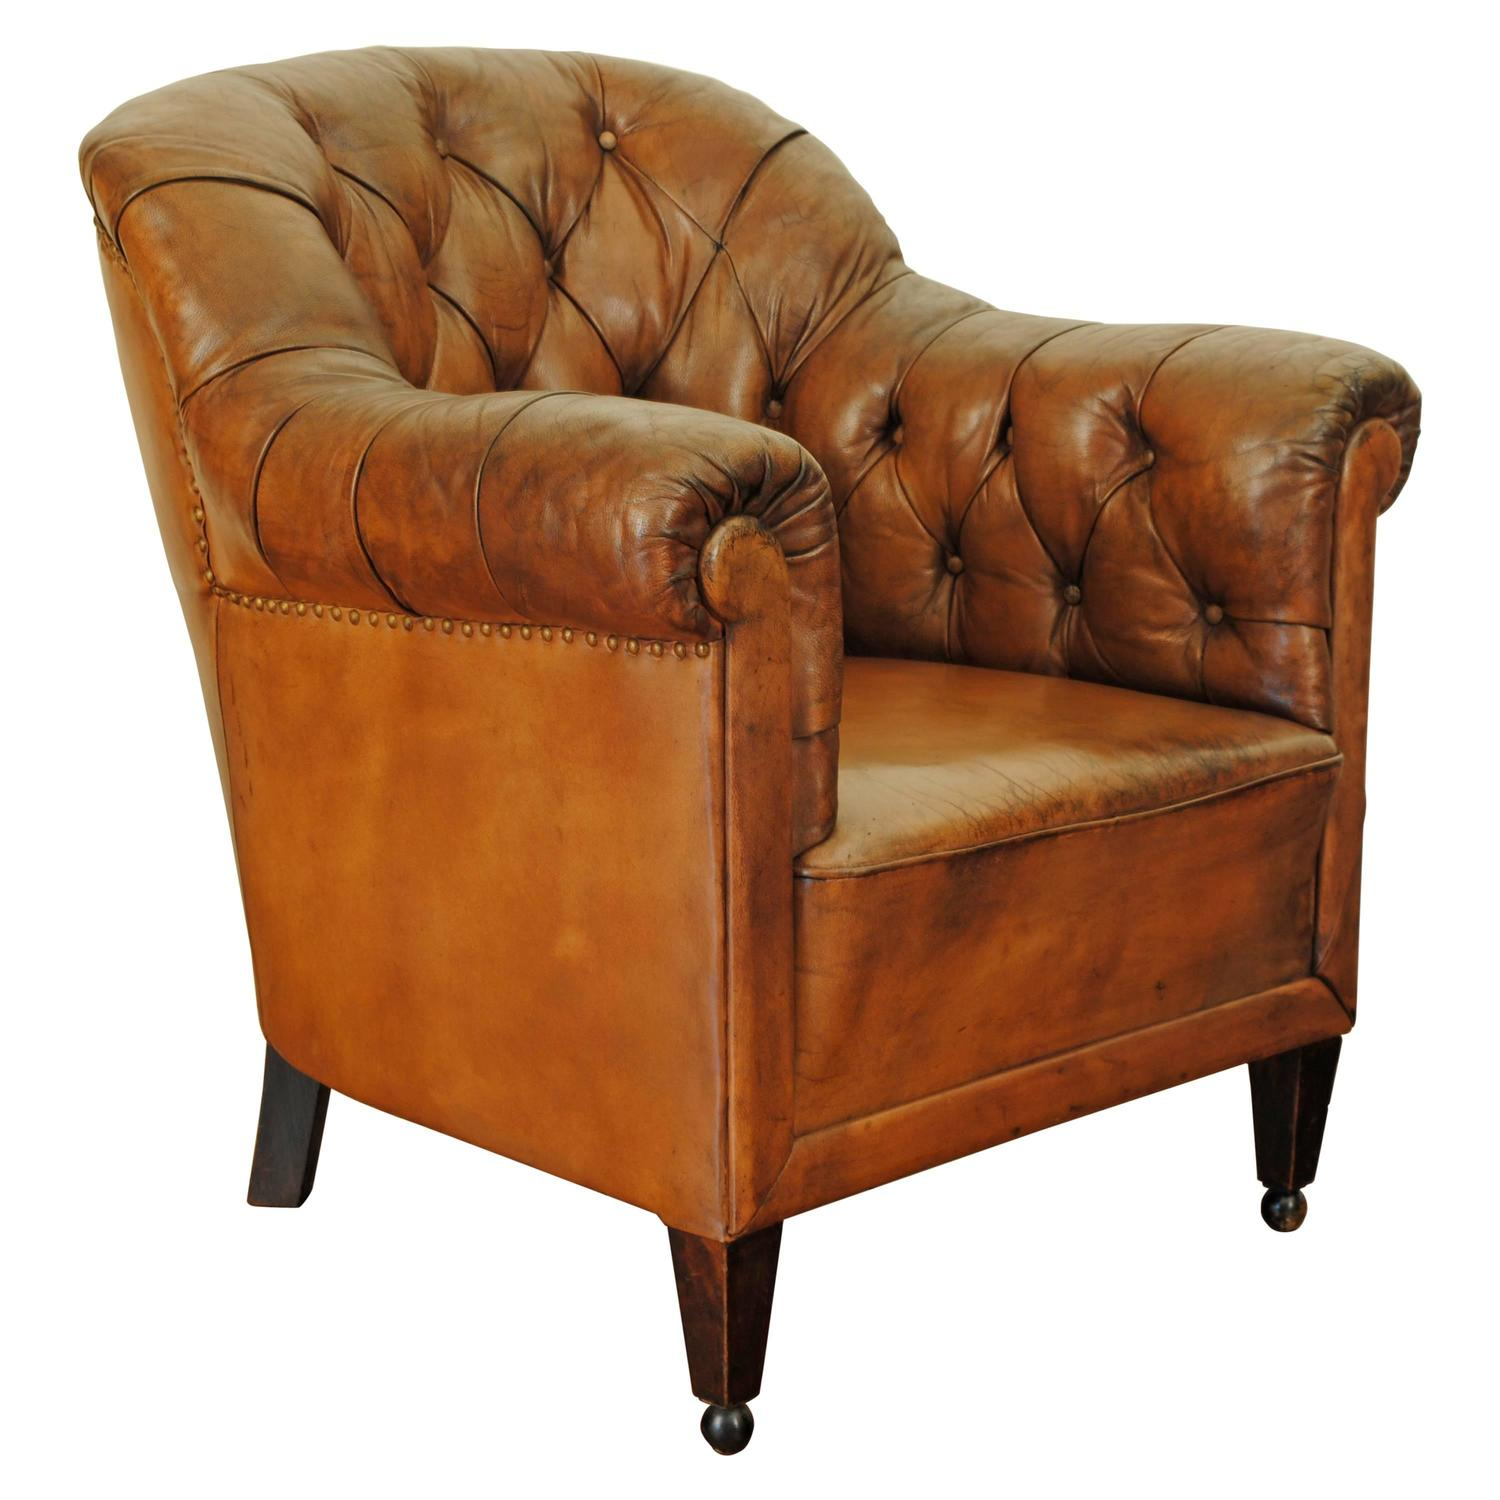 German mid 20th century tufted leather bergere walnut and for Mid 20th century furniture